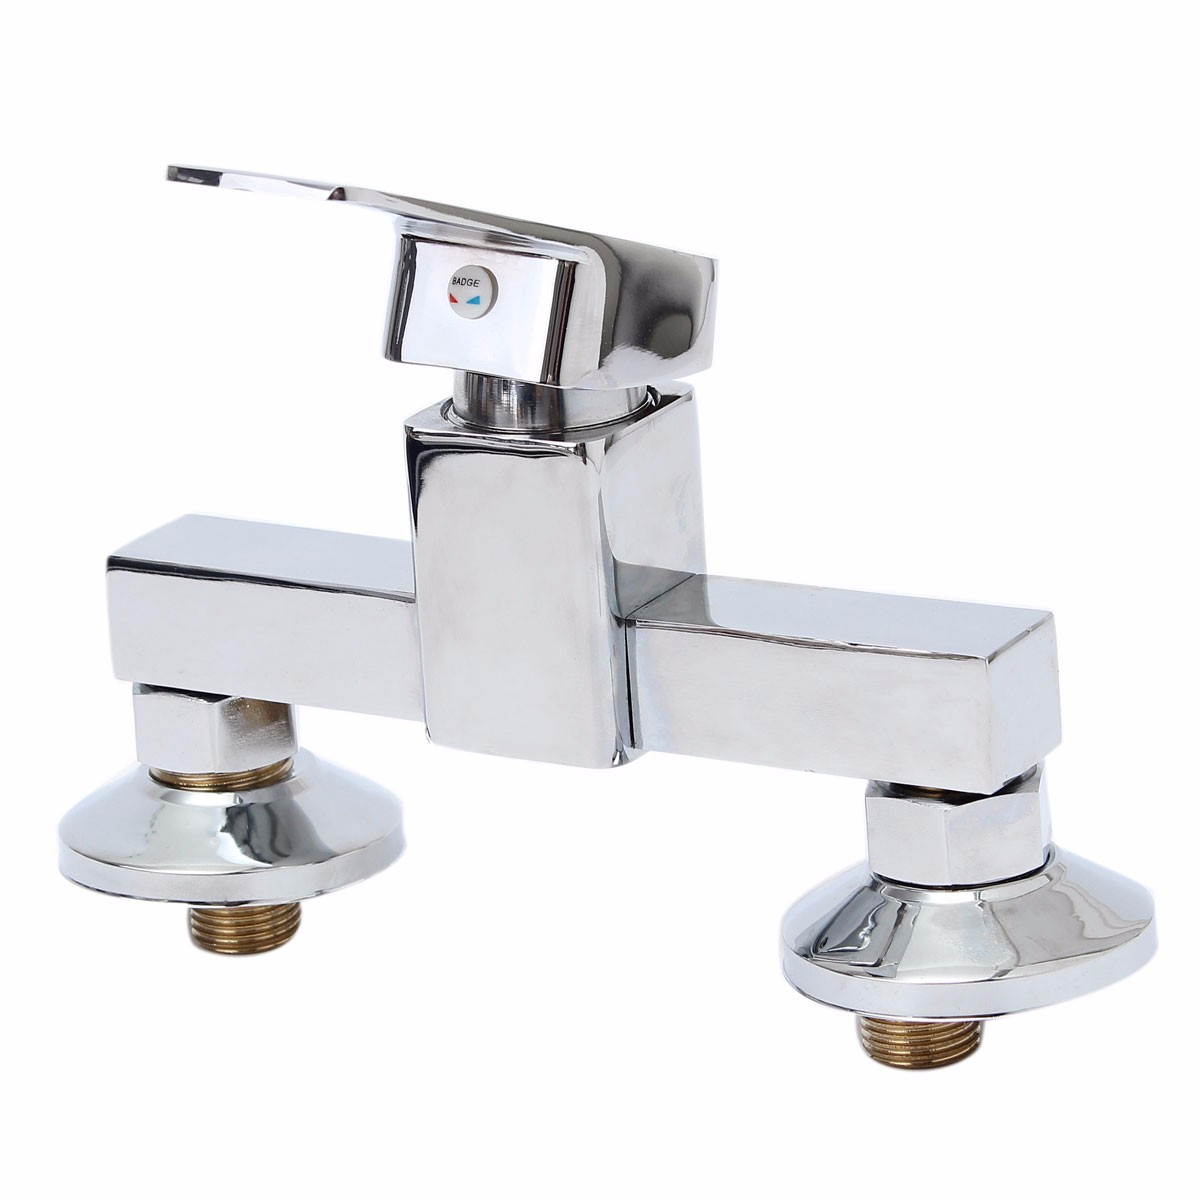 1pcs Bath Shower Faucet Cold and Hot Water Durable Zinc Alloy Wall Mounted Mixer Chrome Plated Bathroom Faucet Valve New1pcs Bath Shower Faucet Cold and Hot Water Durable Zinc Alloy Wall Mounted Mixer Chrome Plated Bathroom Faucet Valve New